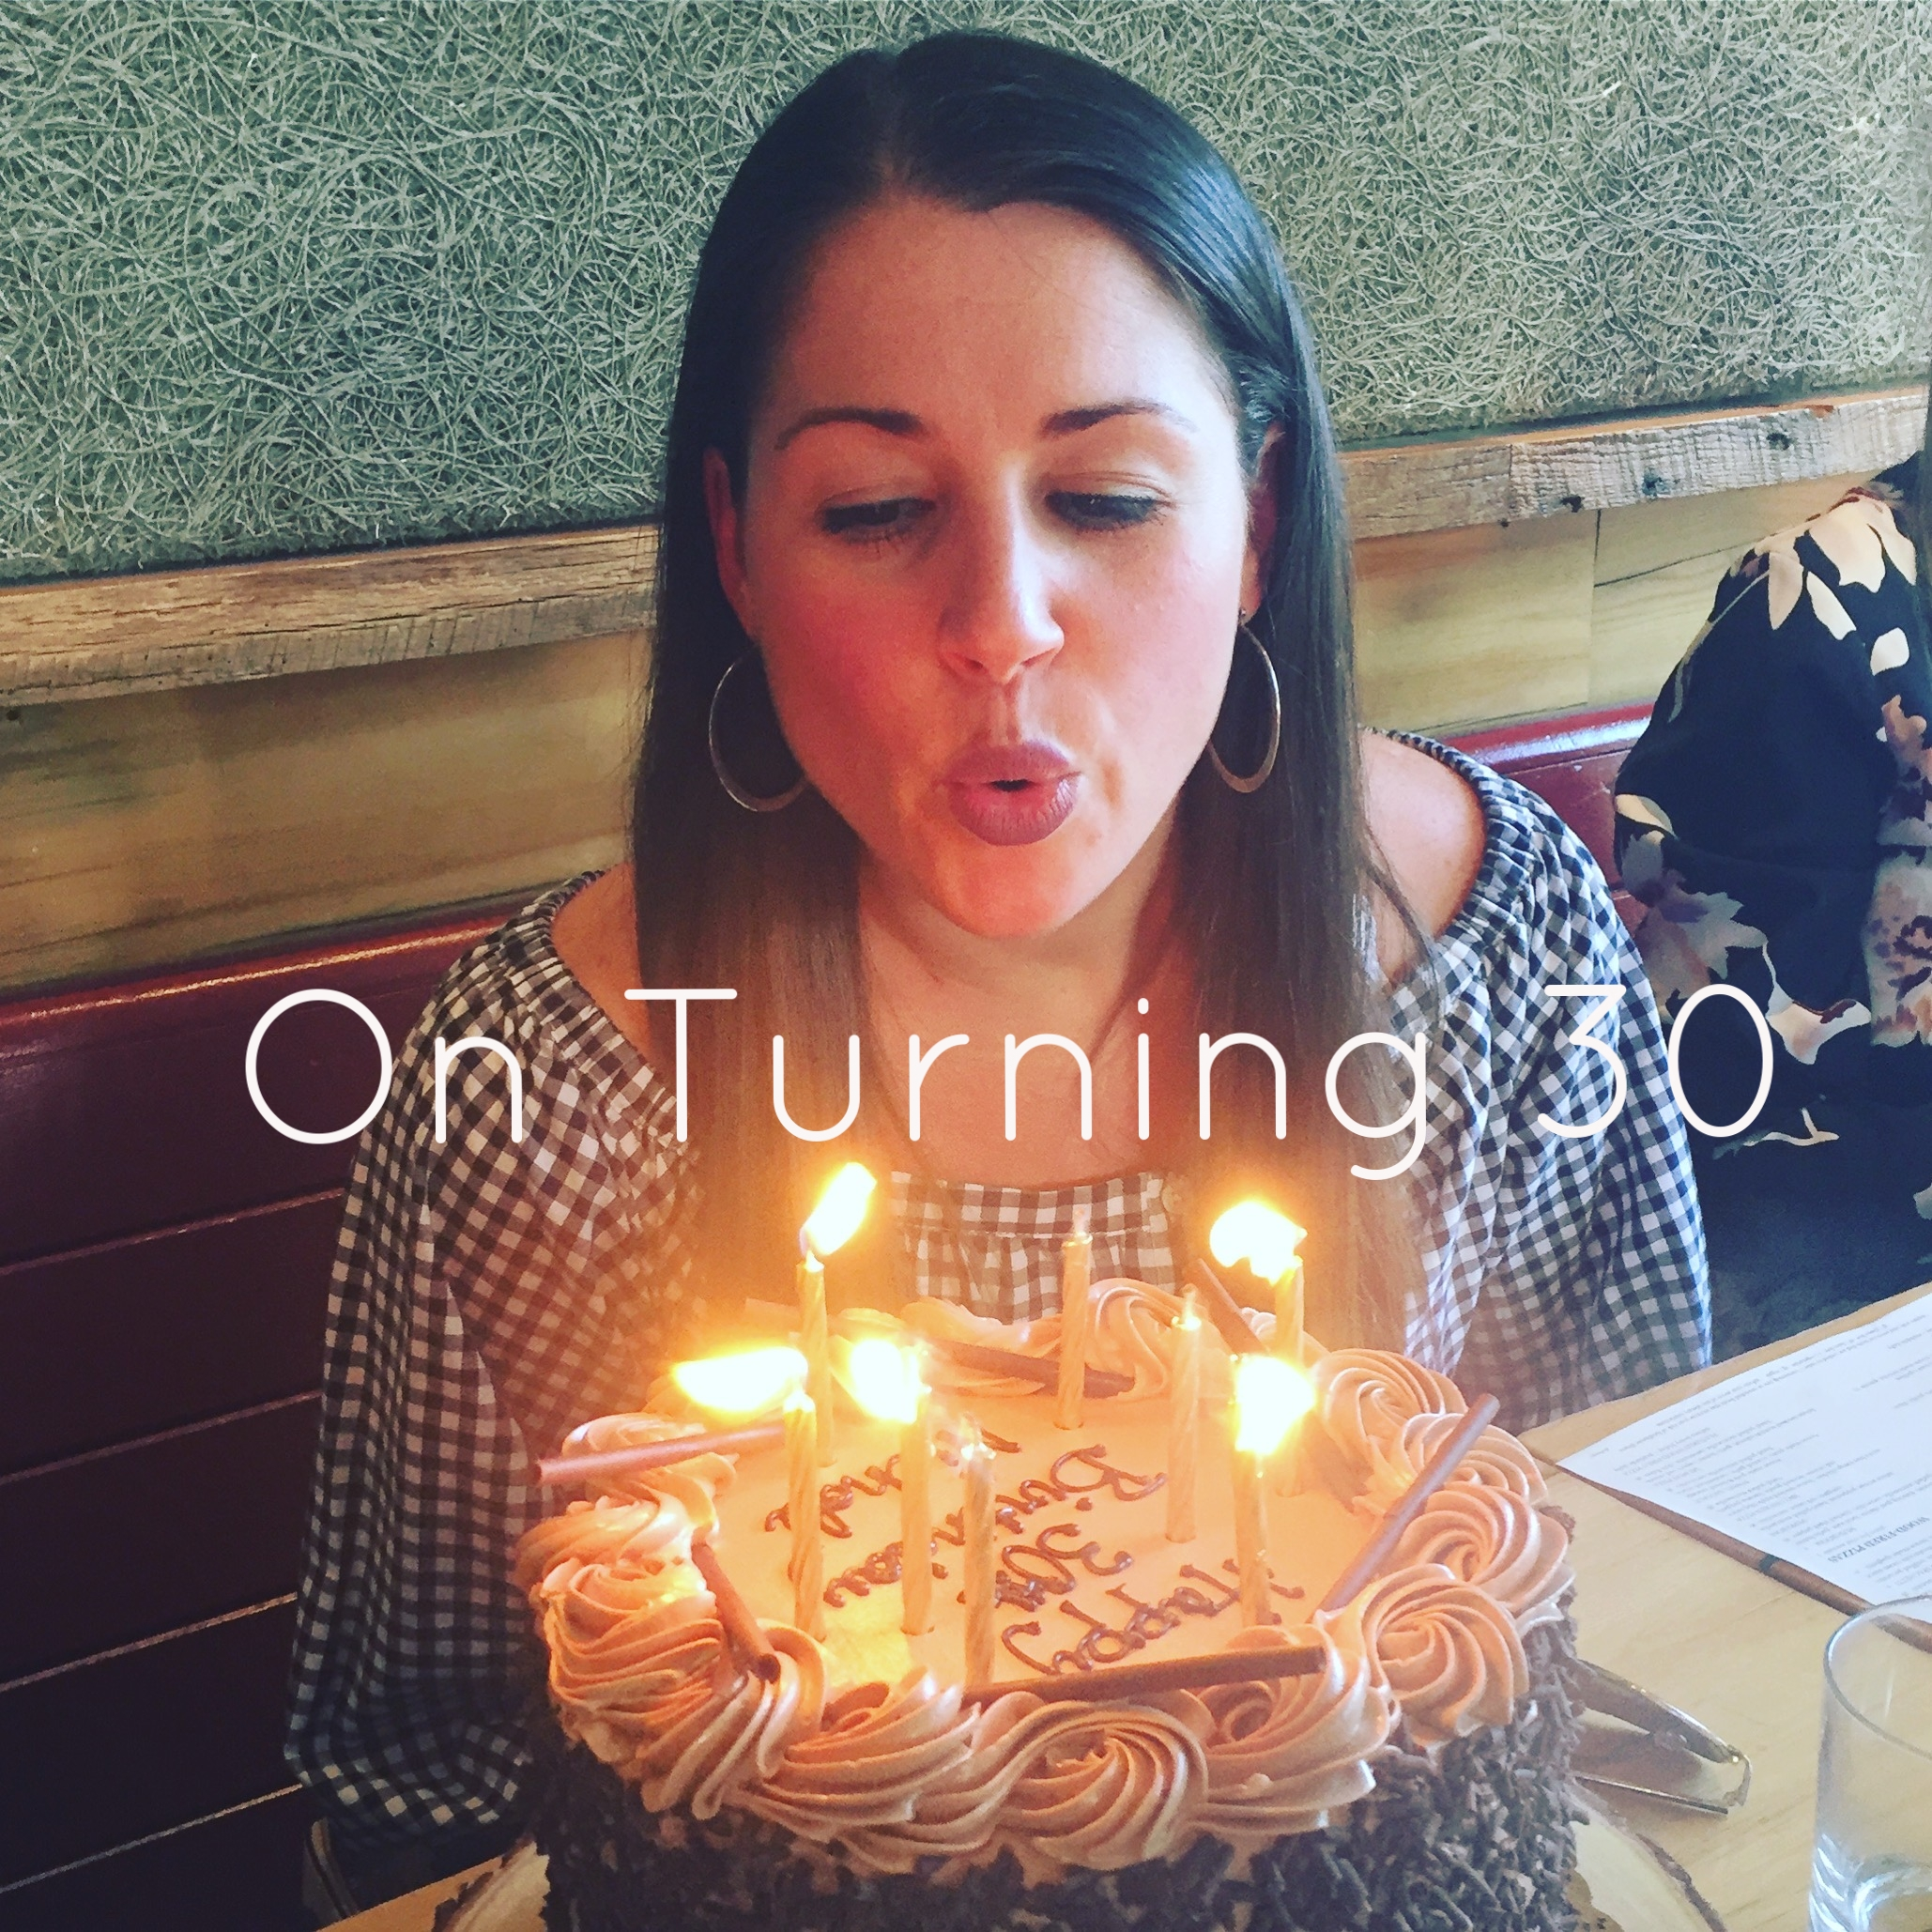 An amazing birthday dinner at TerraGR topped with a fantastic cake from Nantucket Bakery! Felt super special blowing out candles with friends.